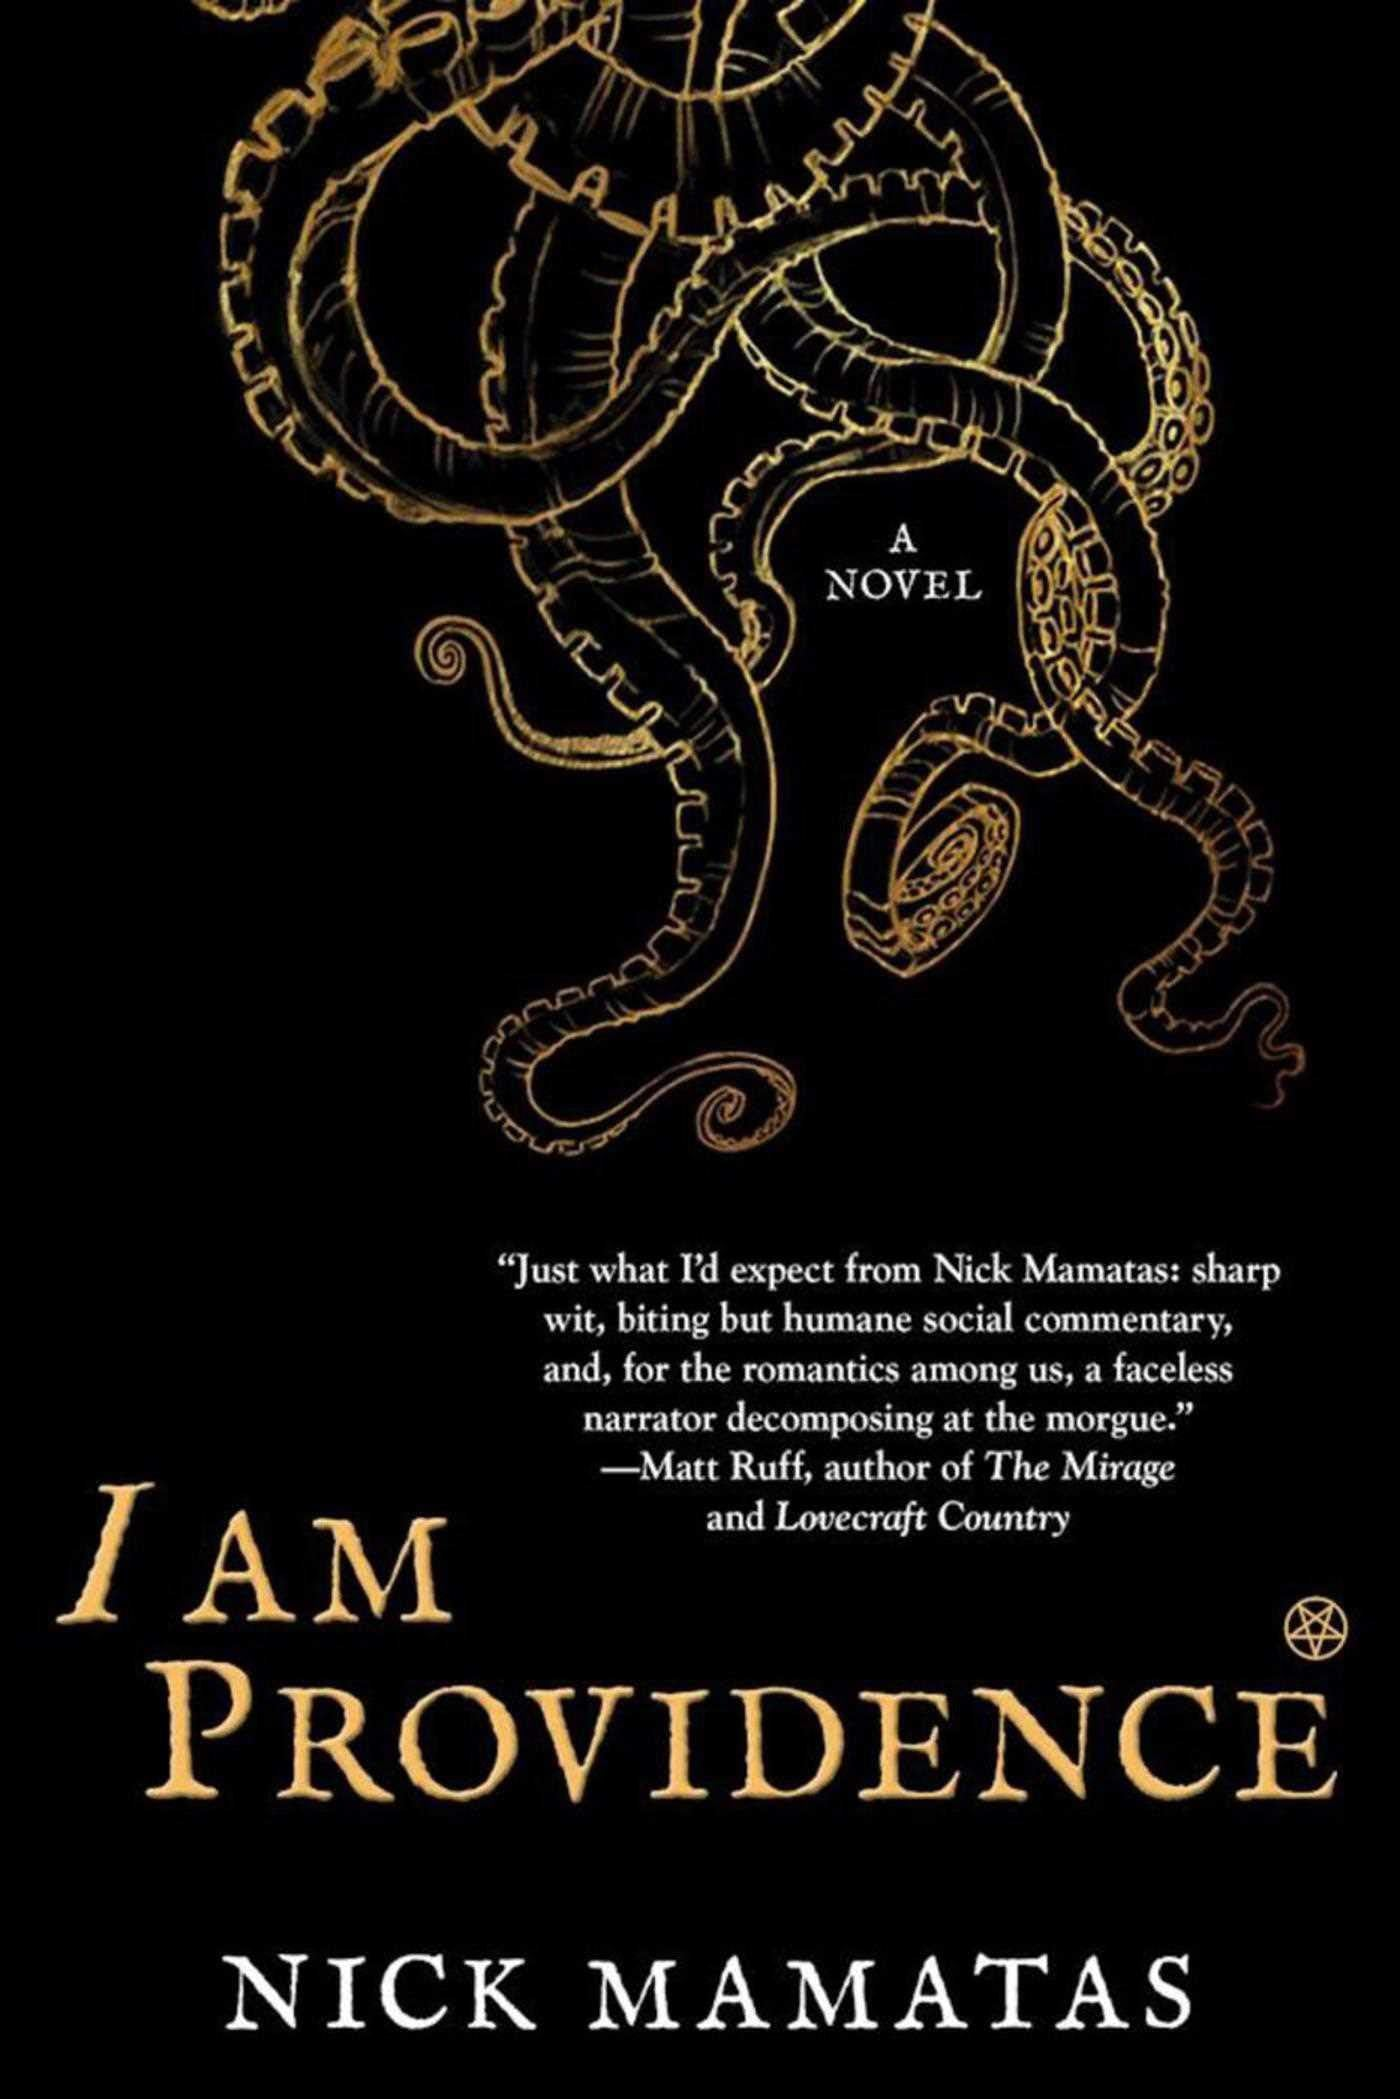 Donnie's Review of I AM PROVIDENCE by Nick Mamatas